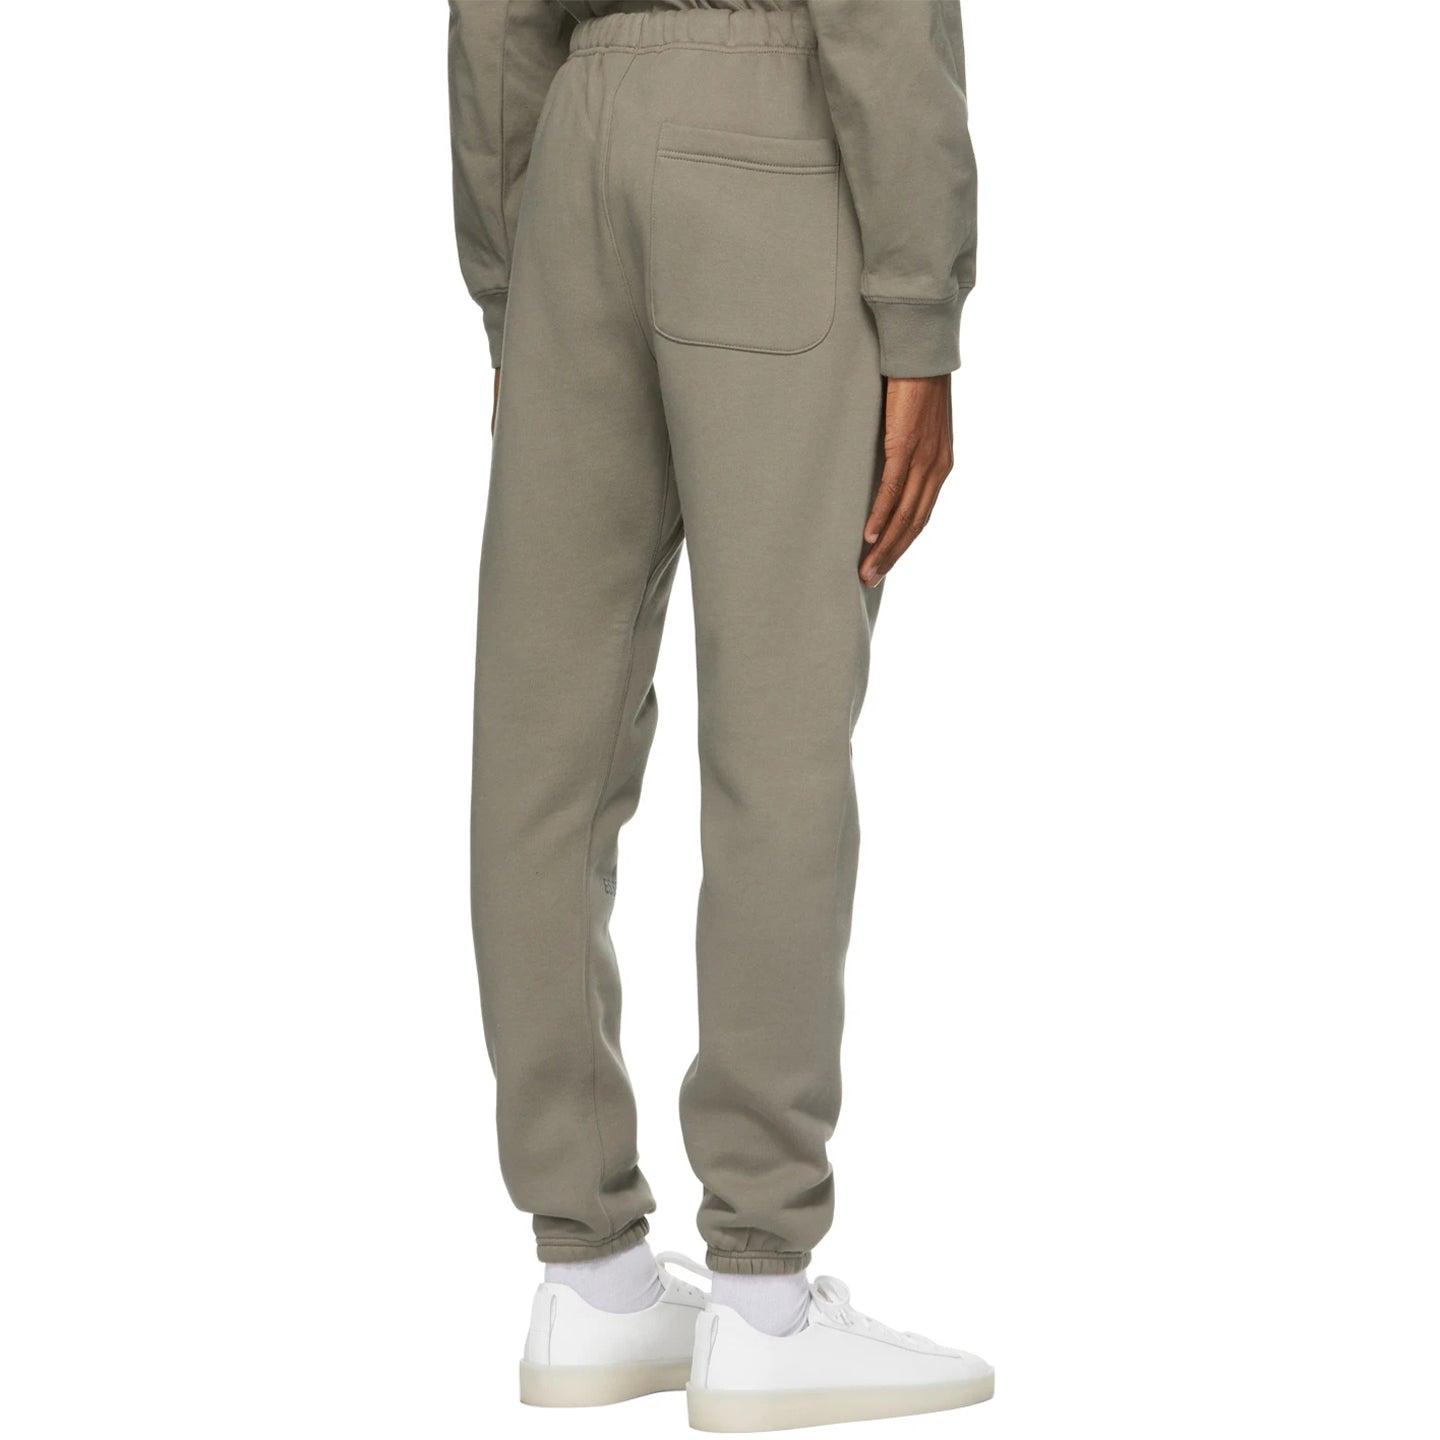 FEAR OF GOD ESSENTIALS SWEATPANT CEMENT